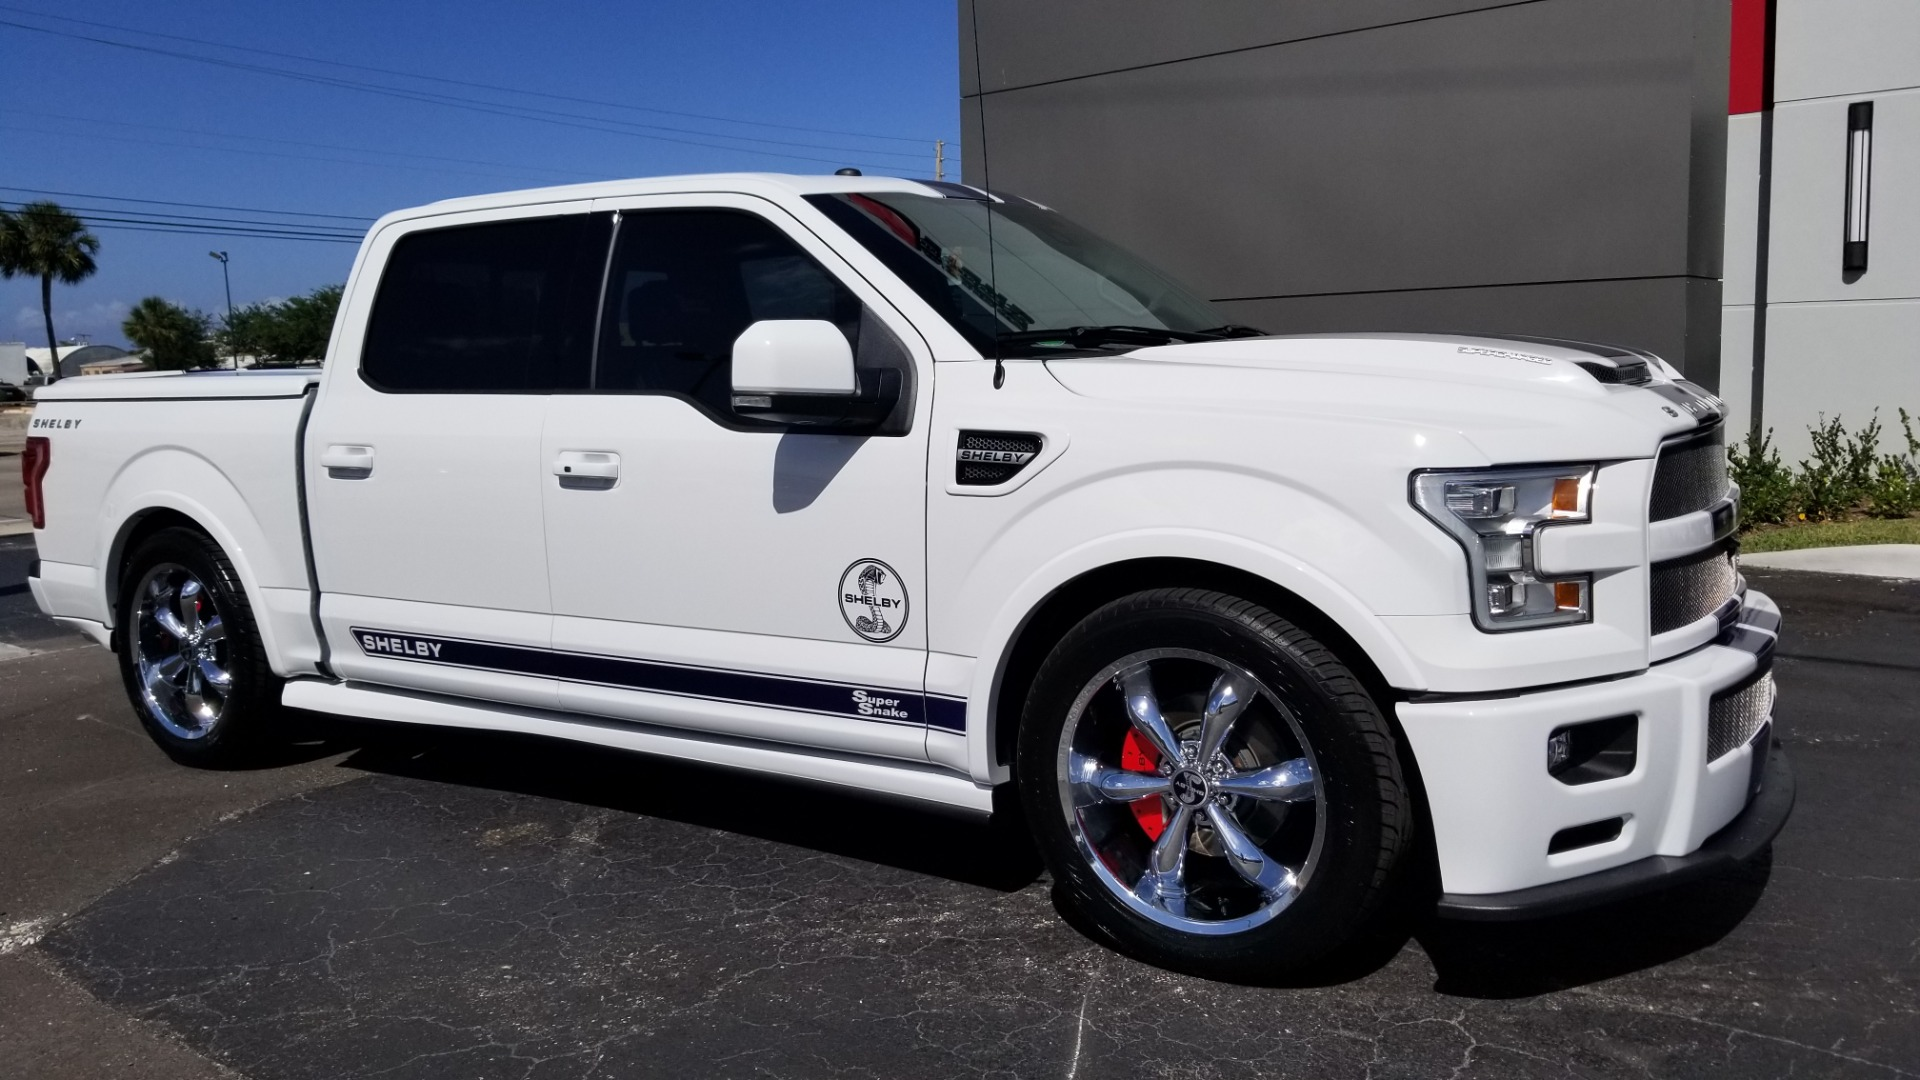 2017 Shelby F150 For Sale >> Used 2017 Ford F 150 Shelby Super Snake For Sale Special Pricing